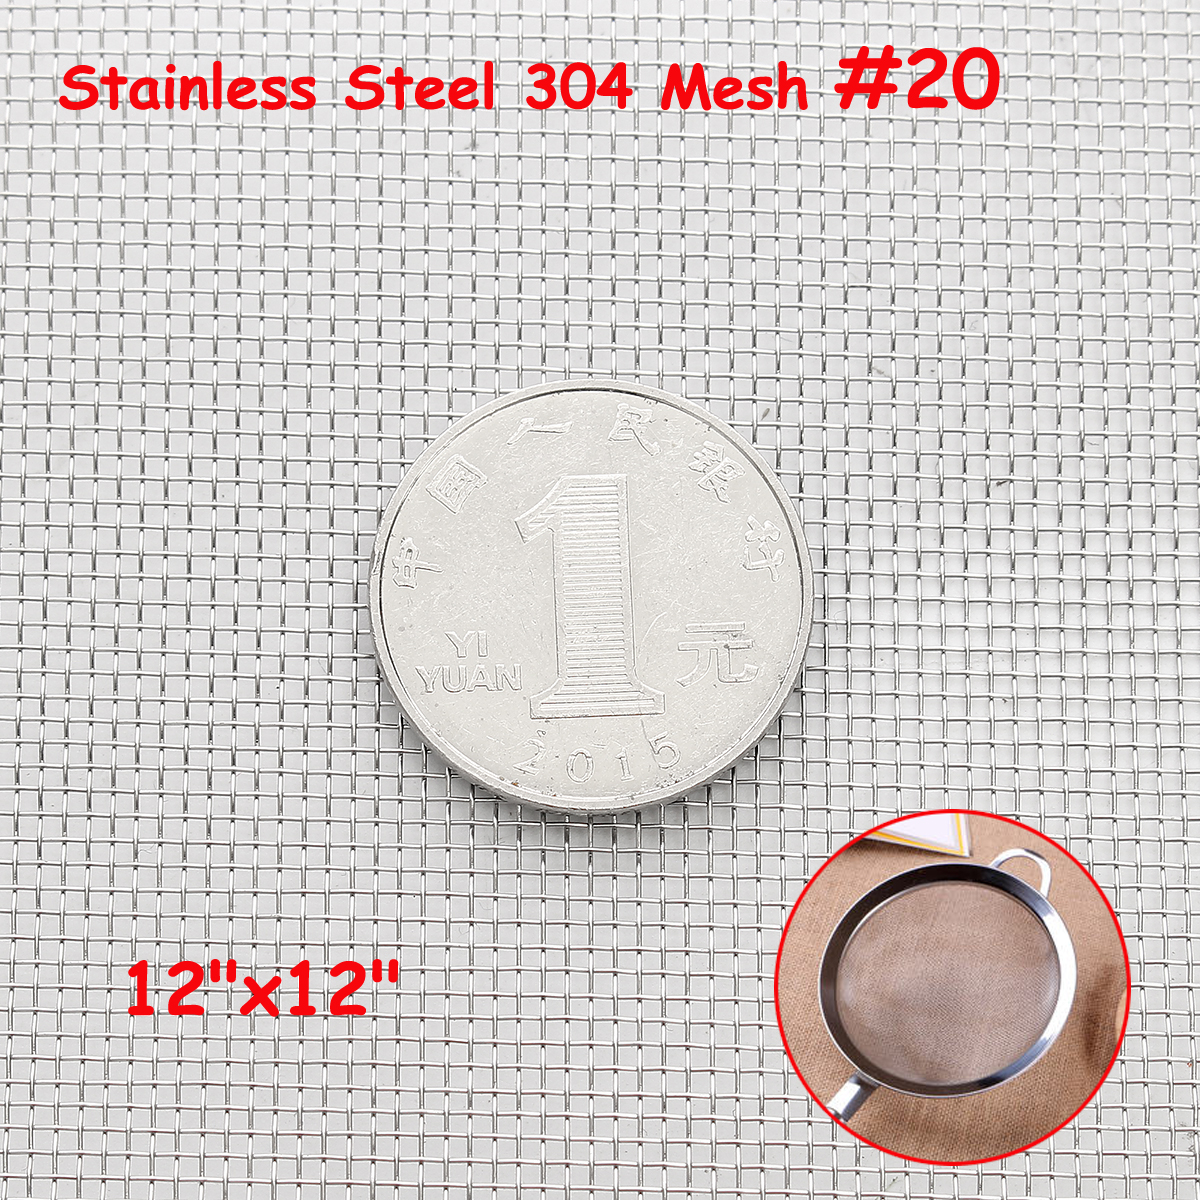 30x30cm Woven Wire 304 Stainless Steel Filtration Grill Sheet Filter 20 Mesh